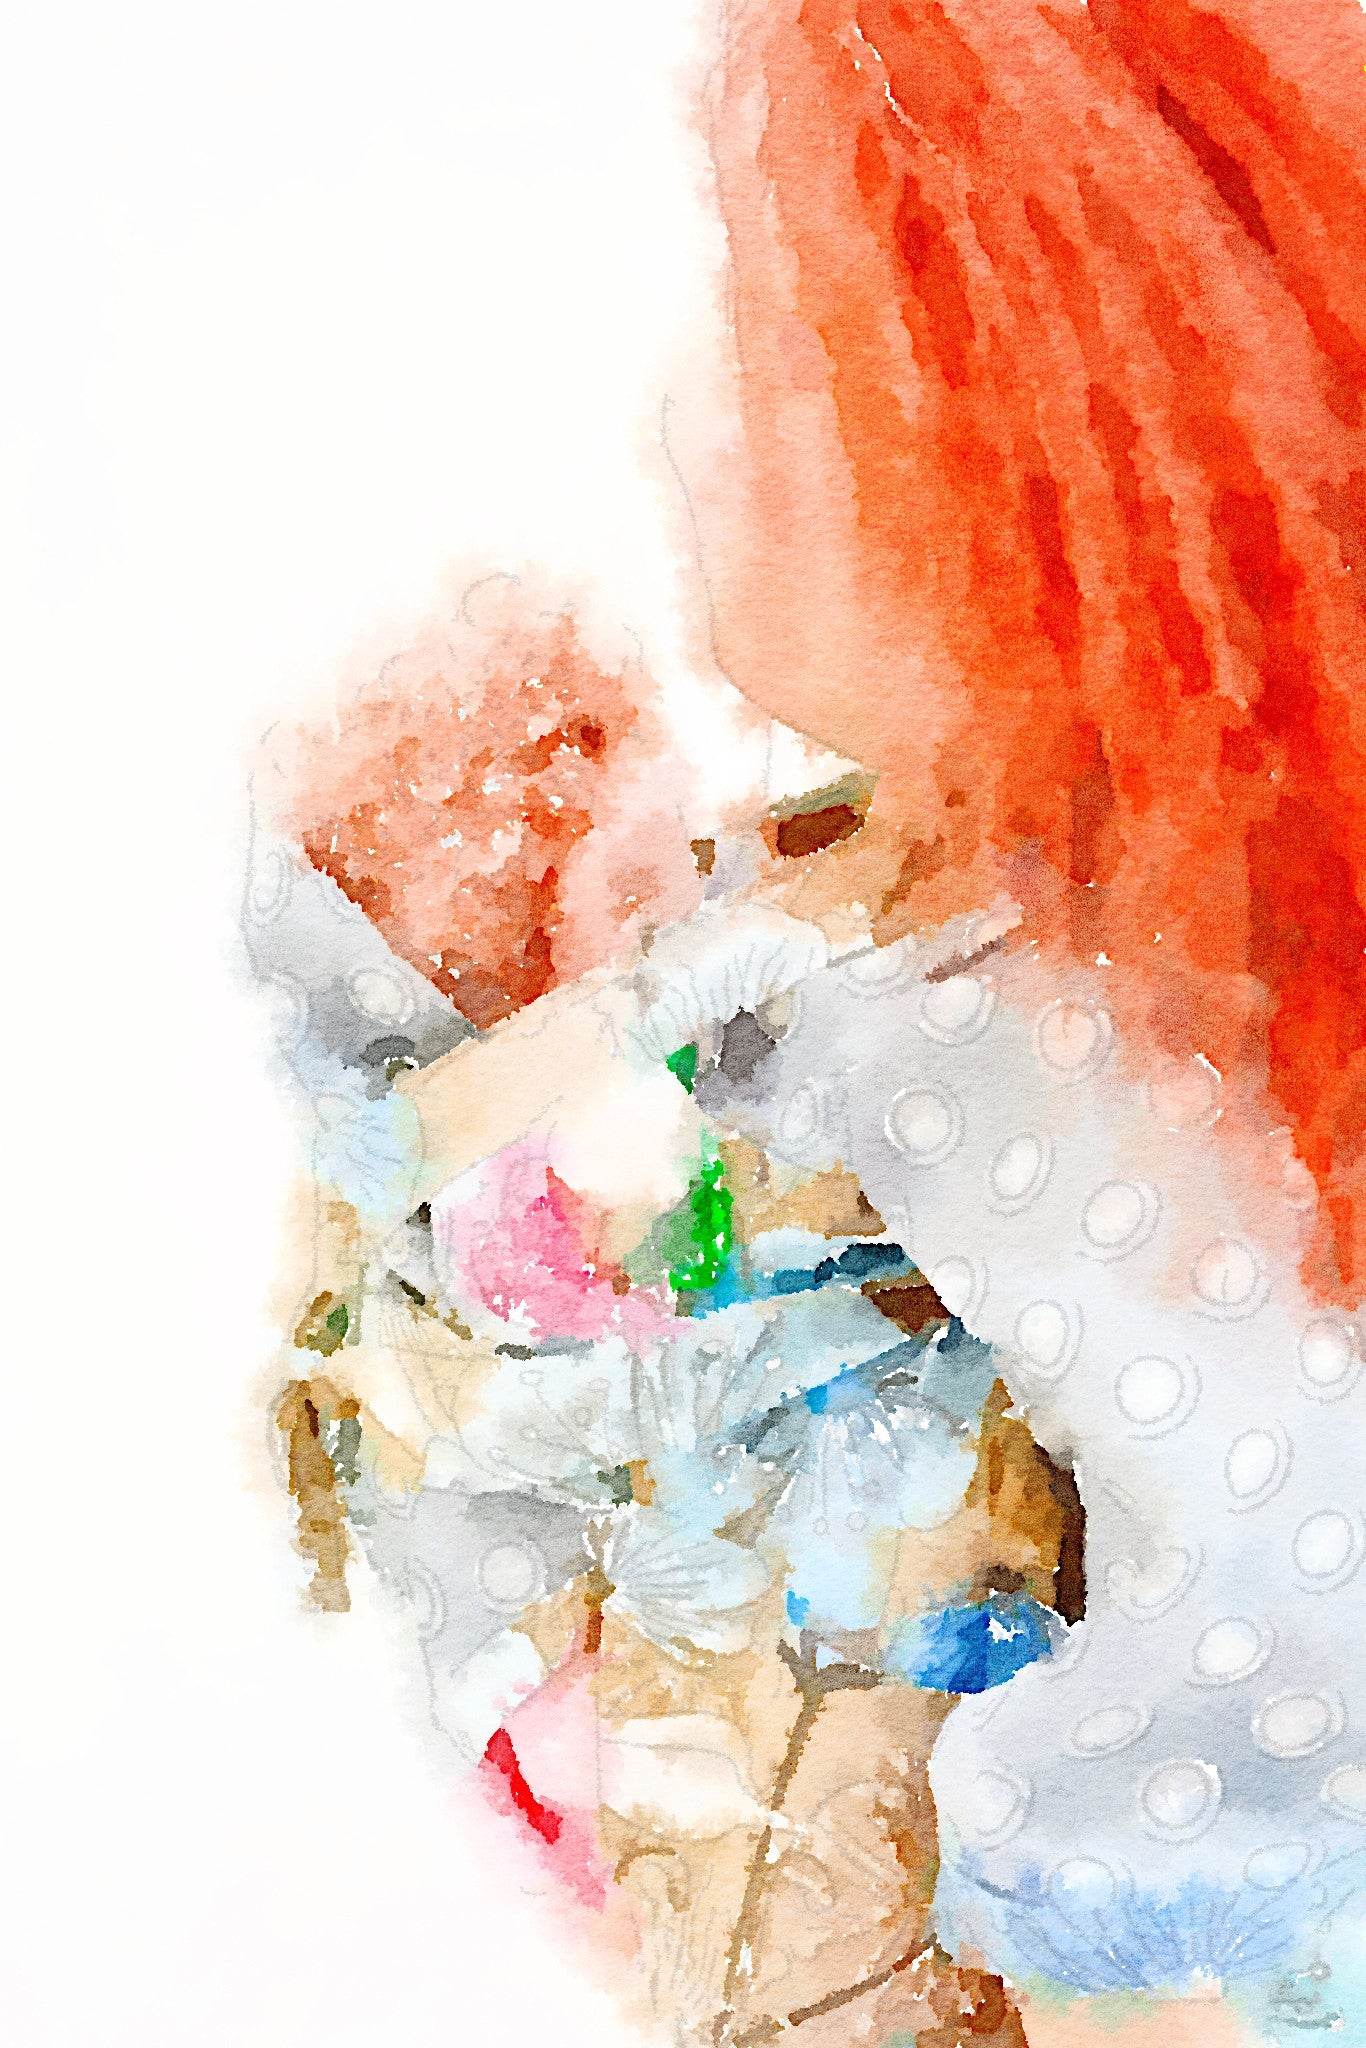 Digital Nursery Art - Wash day